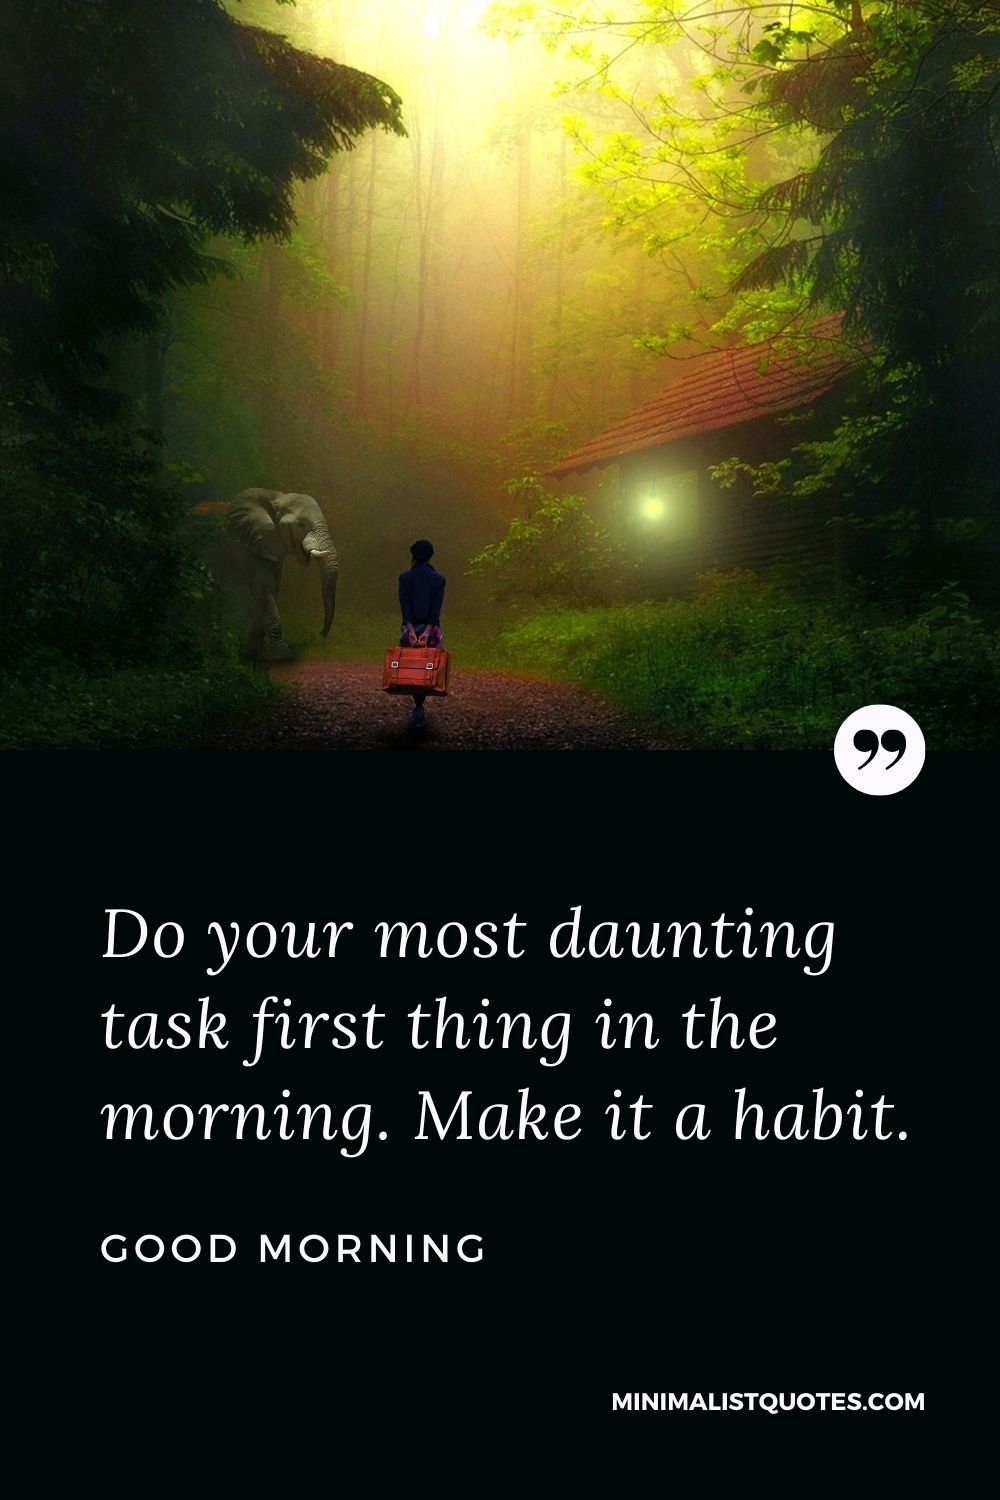 Good Morning Wish & Message With Image: Do yourmost daunting task first thing in the morning.Make it a habit. Good Morning!